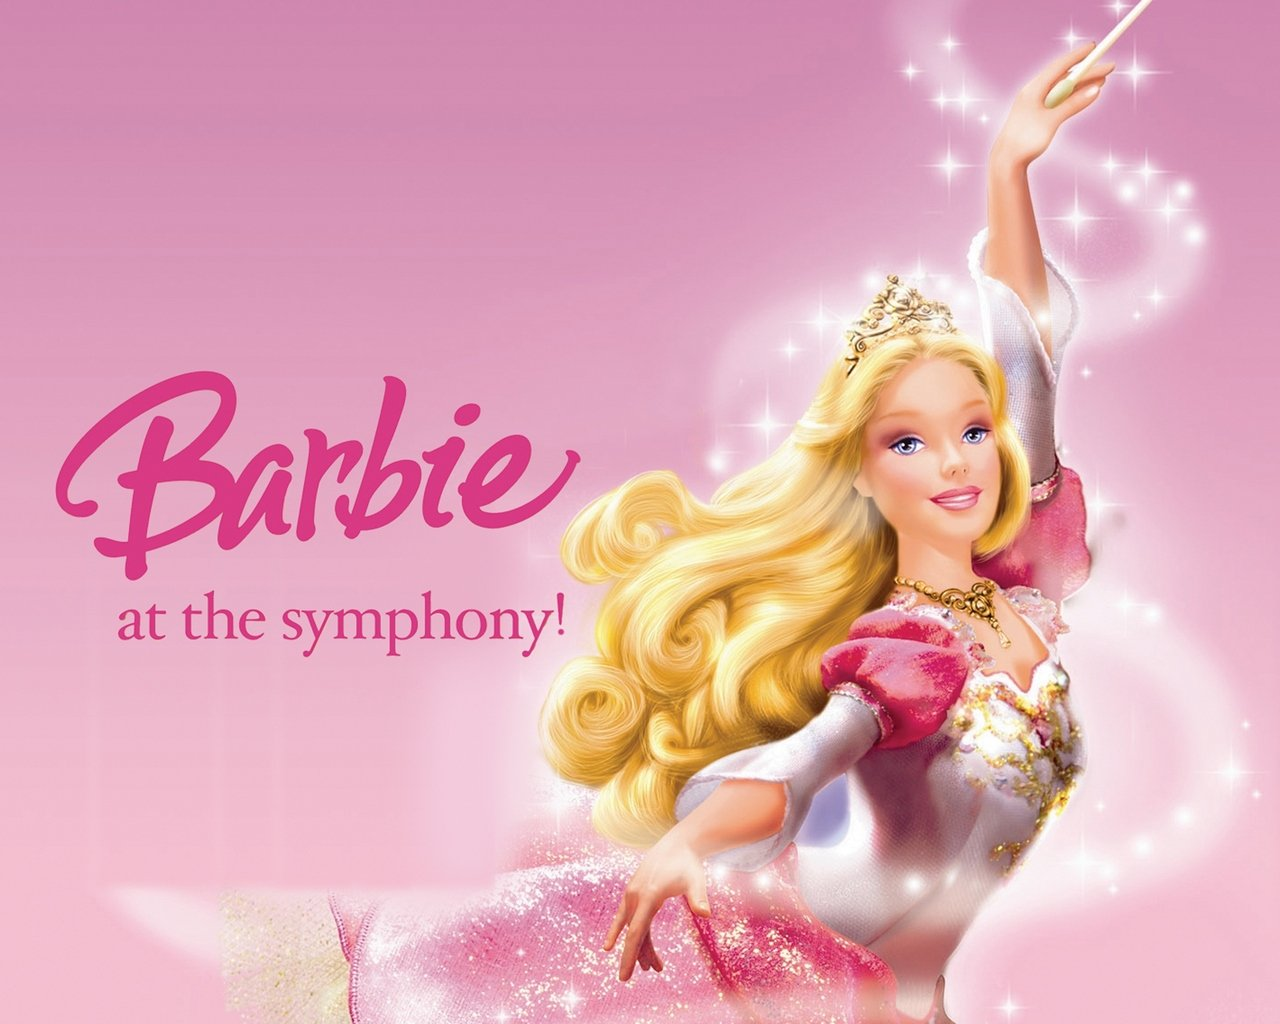 Barbie princess movies images barbie 12 dancing princesses hd barbie princess movies images barbie 12 dancing princesses hd wallpaper and background photos voltagebd Images